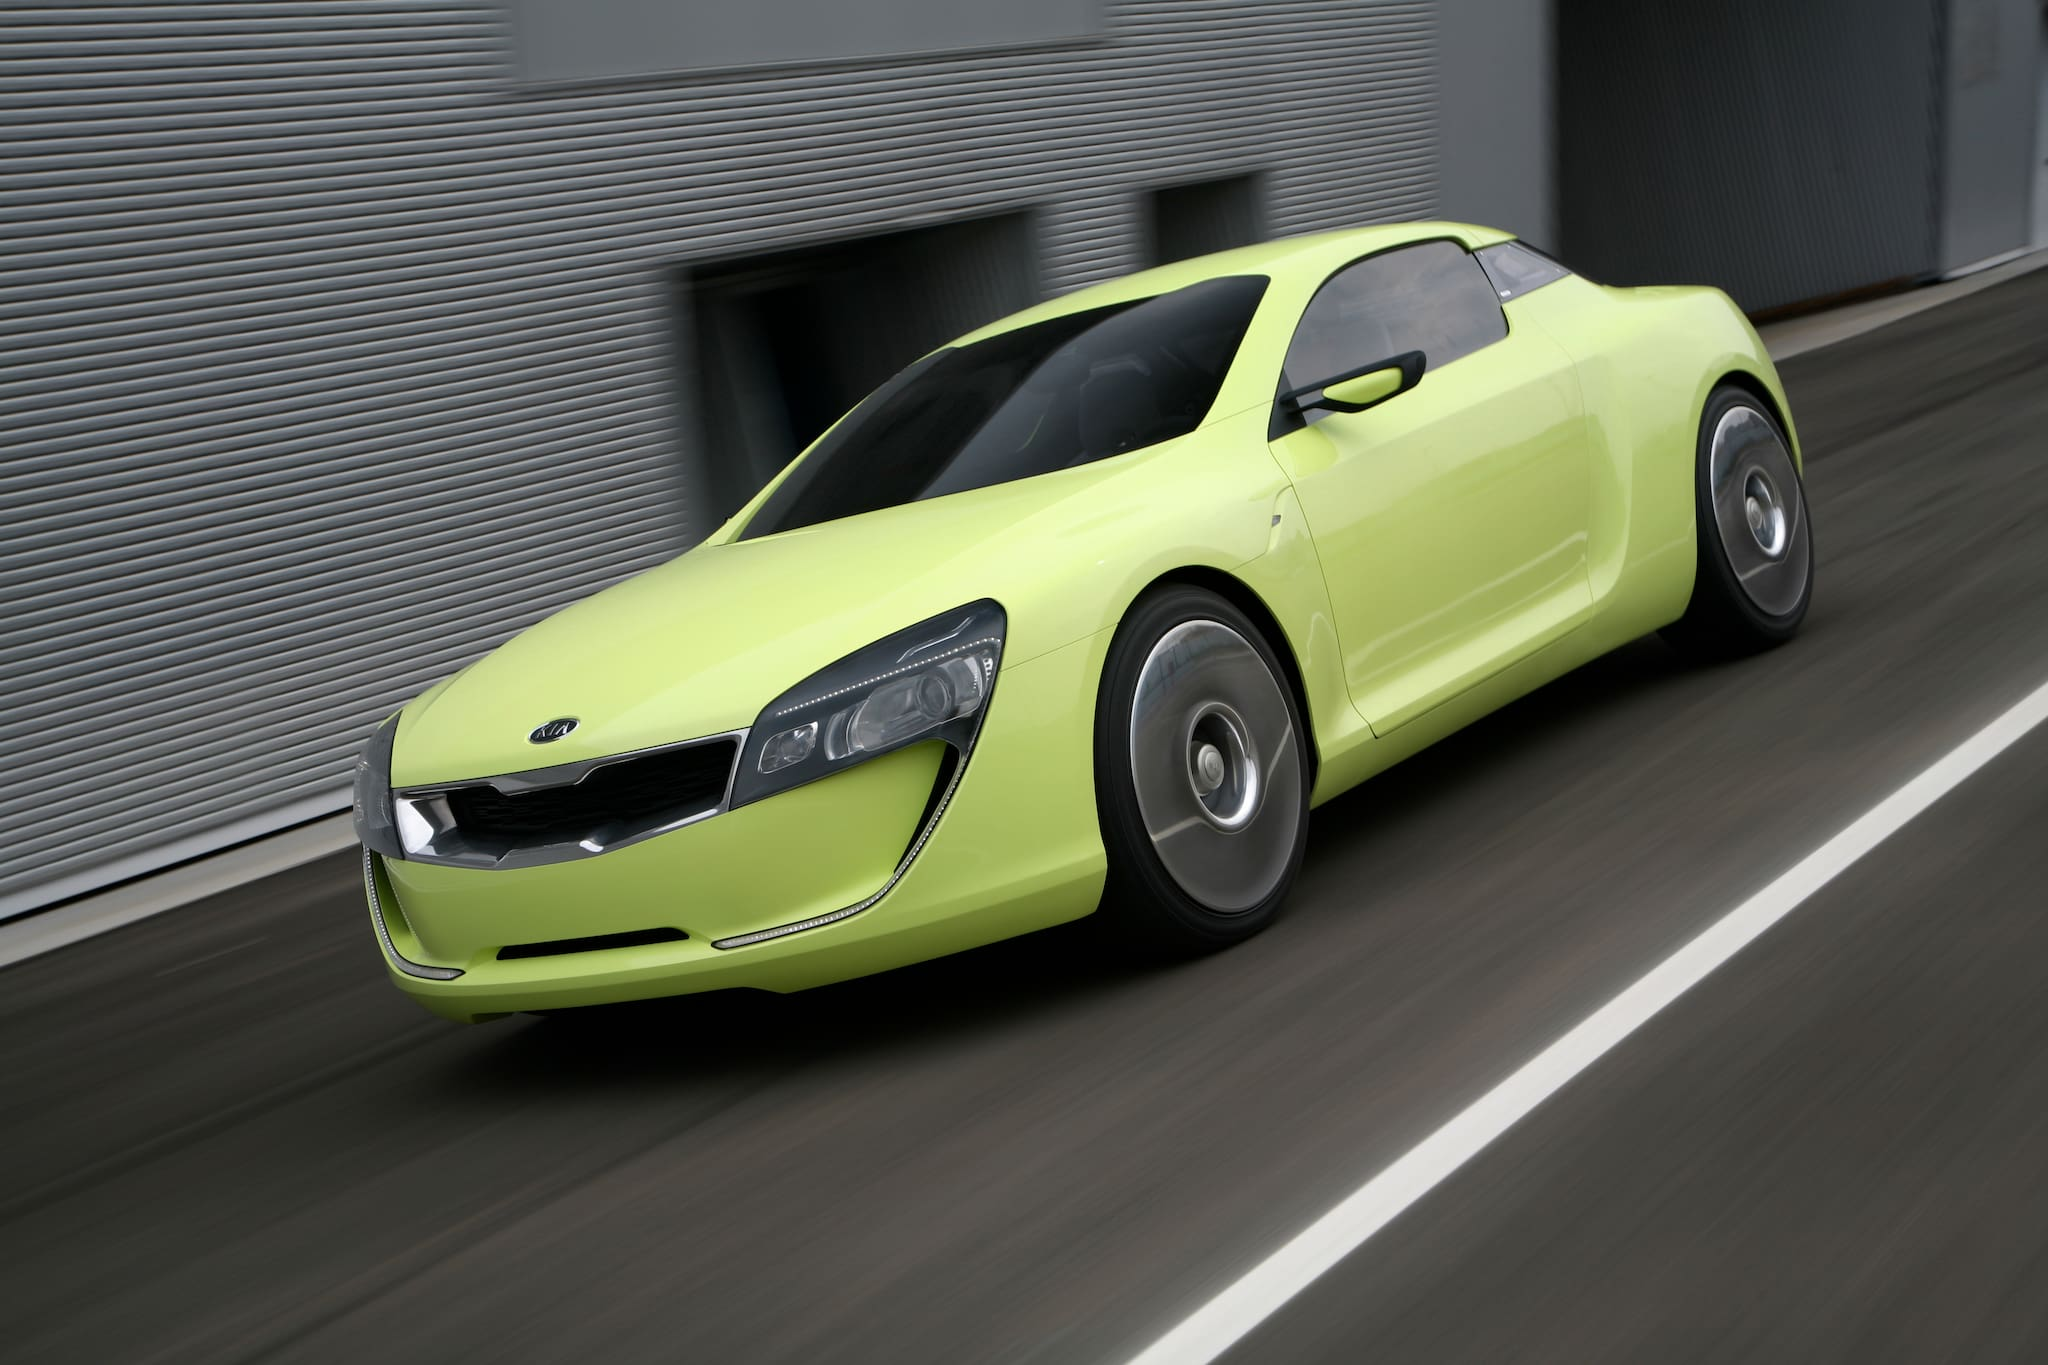 Design Cues That Make Kia Cars Stand Out